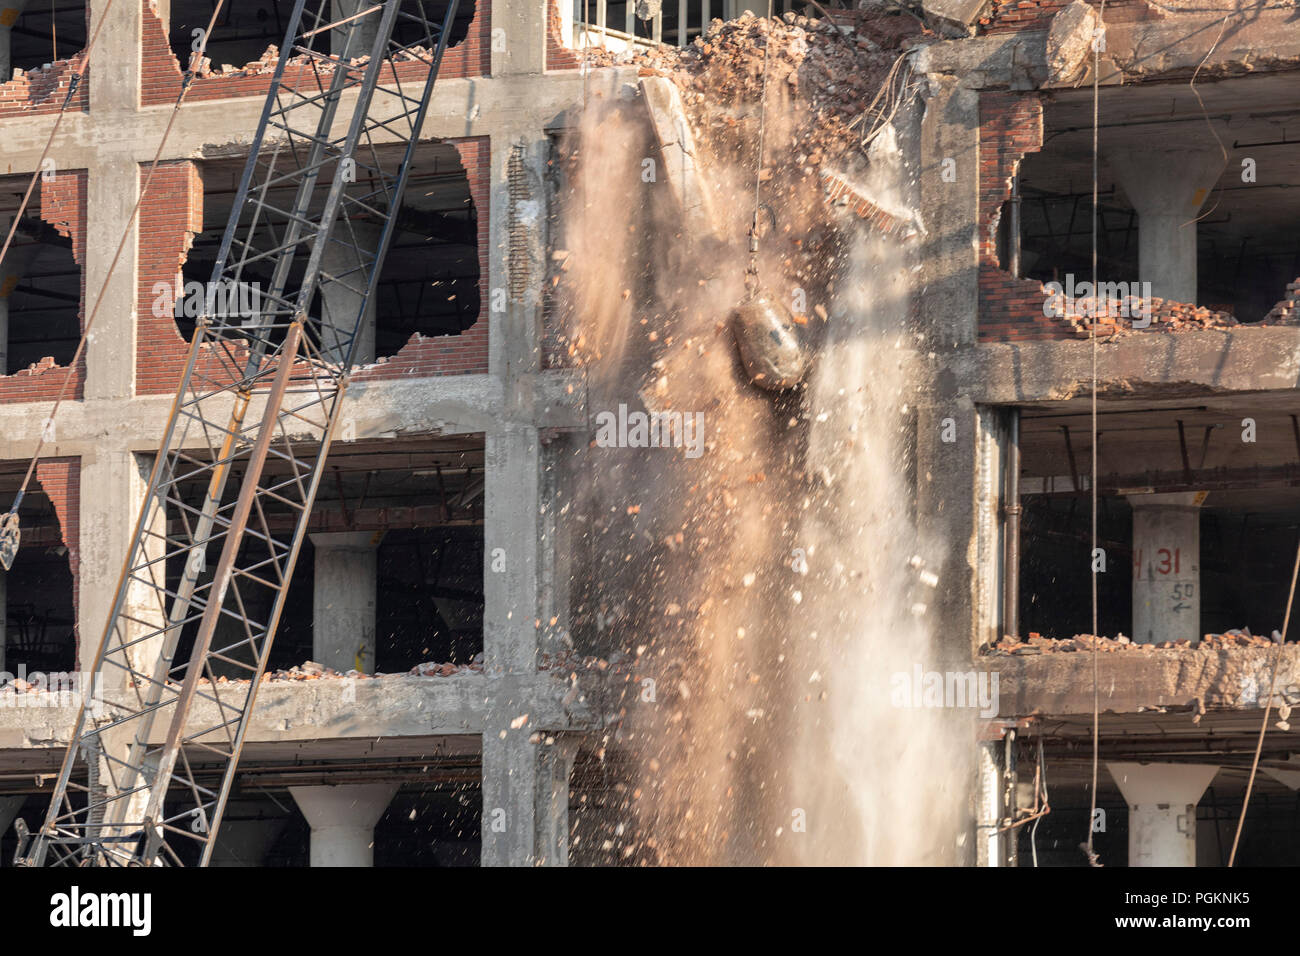 Rock Island, Illinois - Workers use a wrecking ball to demolish the Rock Island Plow Company building. Subsequently used by J.I. Case, the building ha - Stock Image